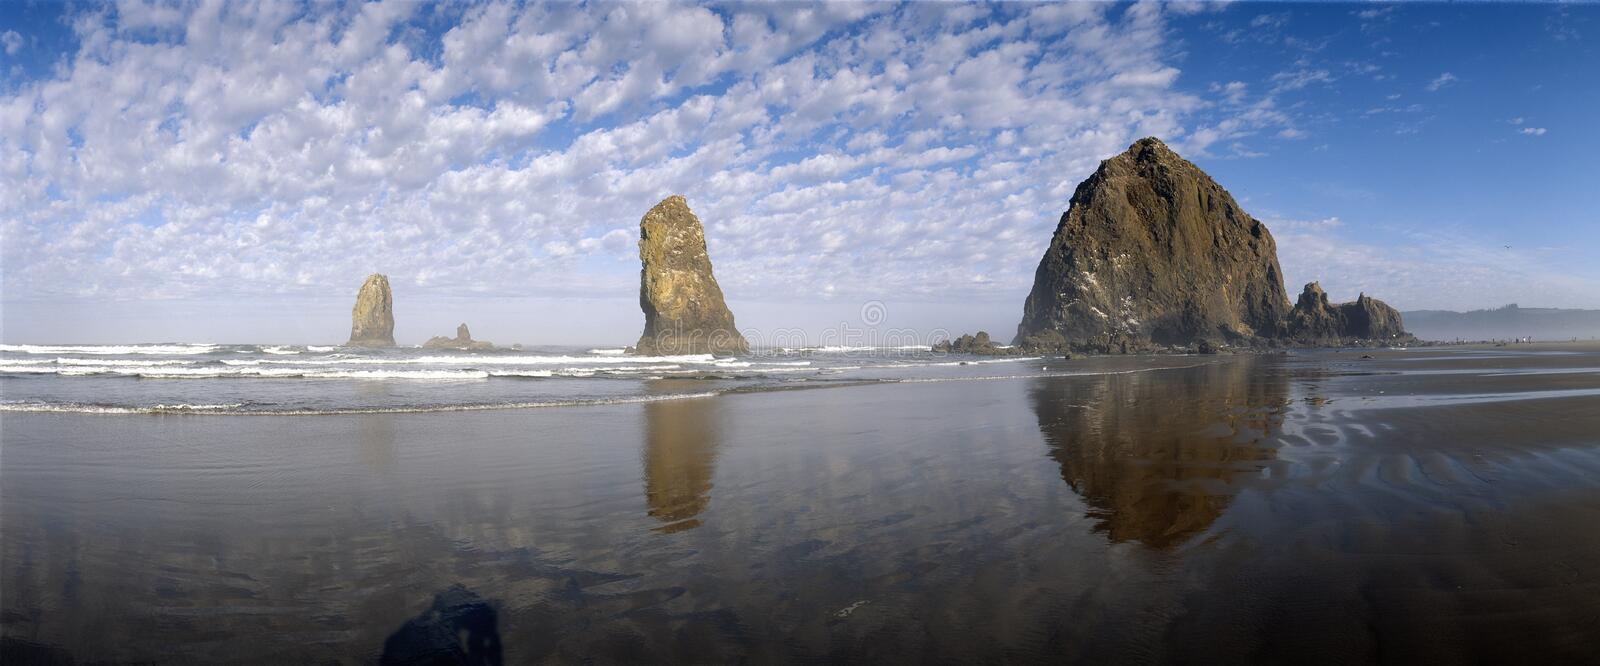 Download Cannon Beach, stock image. Image of ecology, nature, coastlines - 23176047